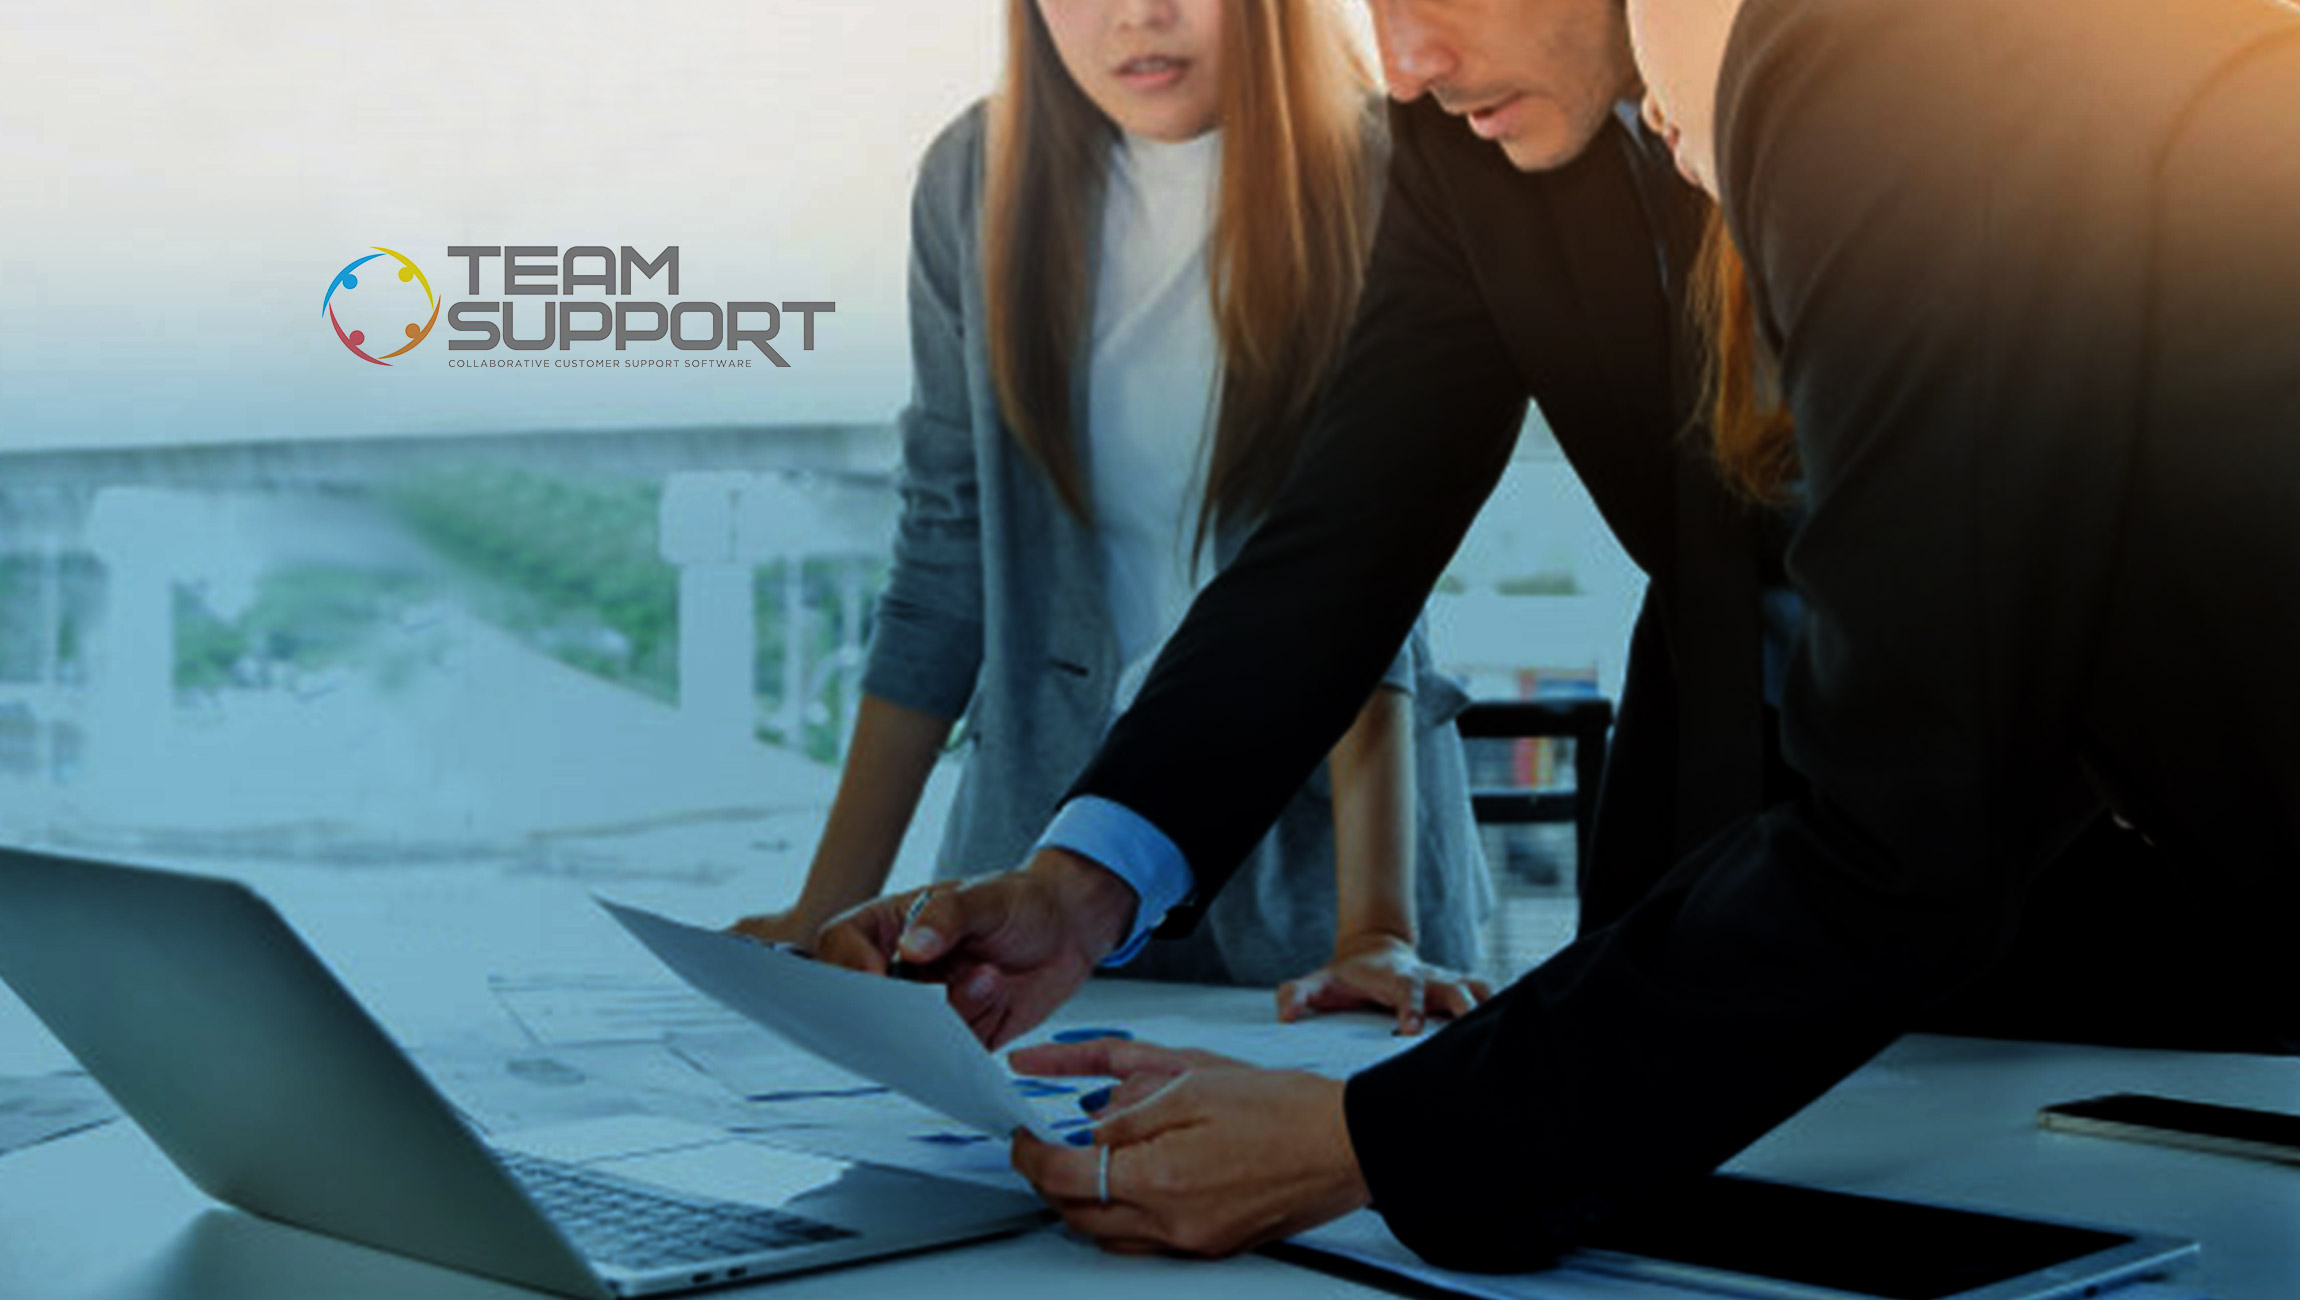 TeamSupport Unveils New Capabilities to Strengthen B2B Customer Support Software